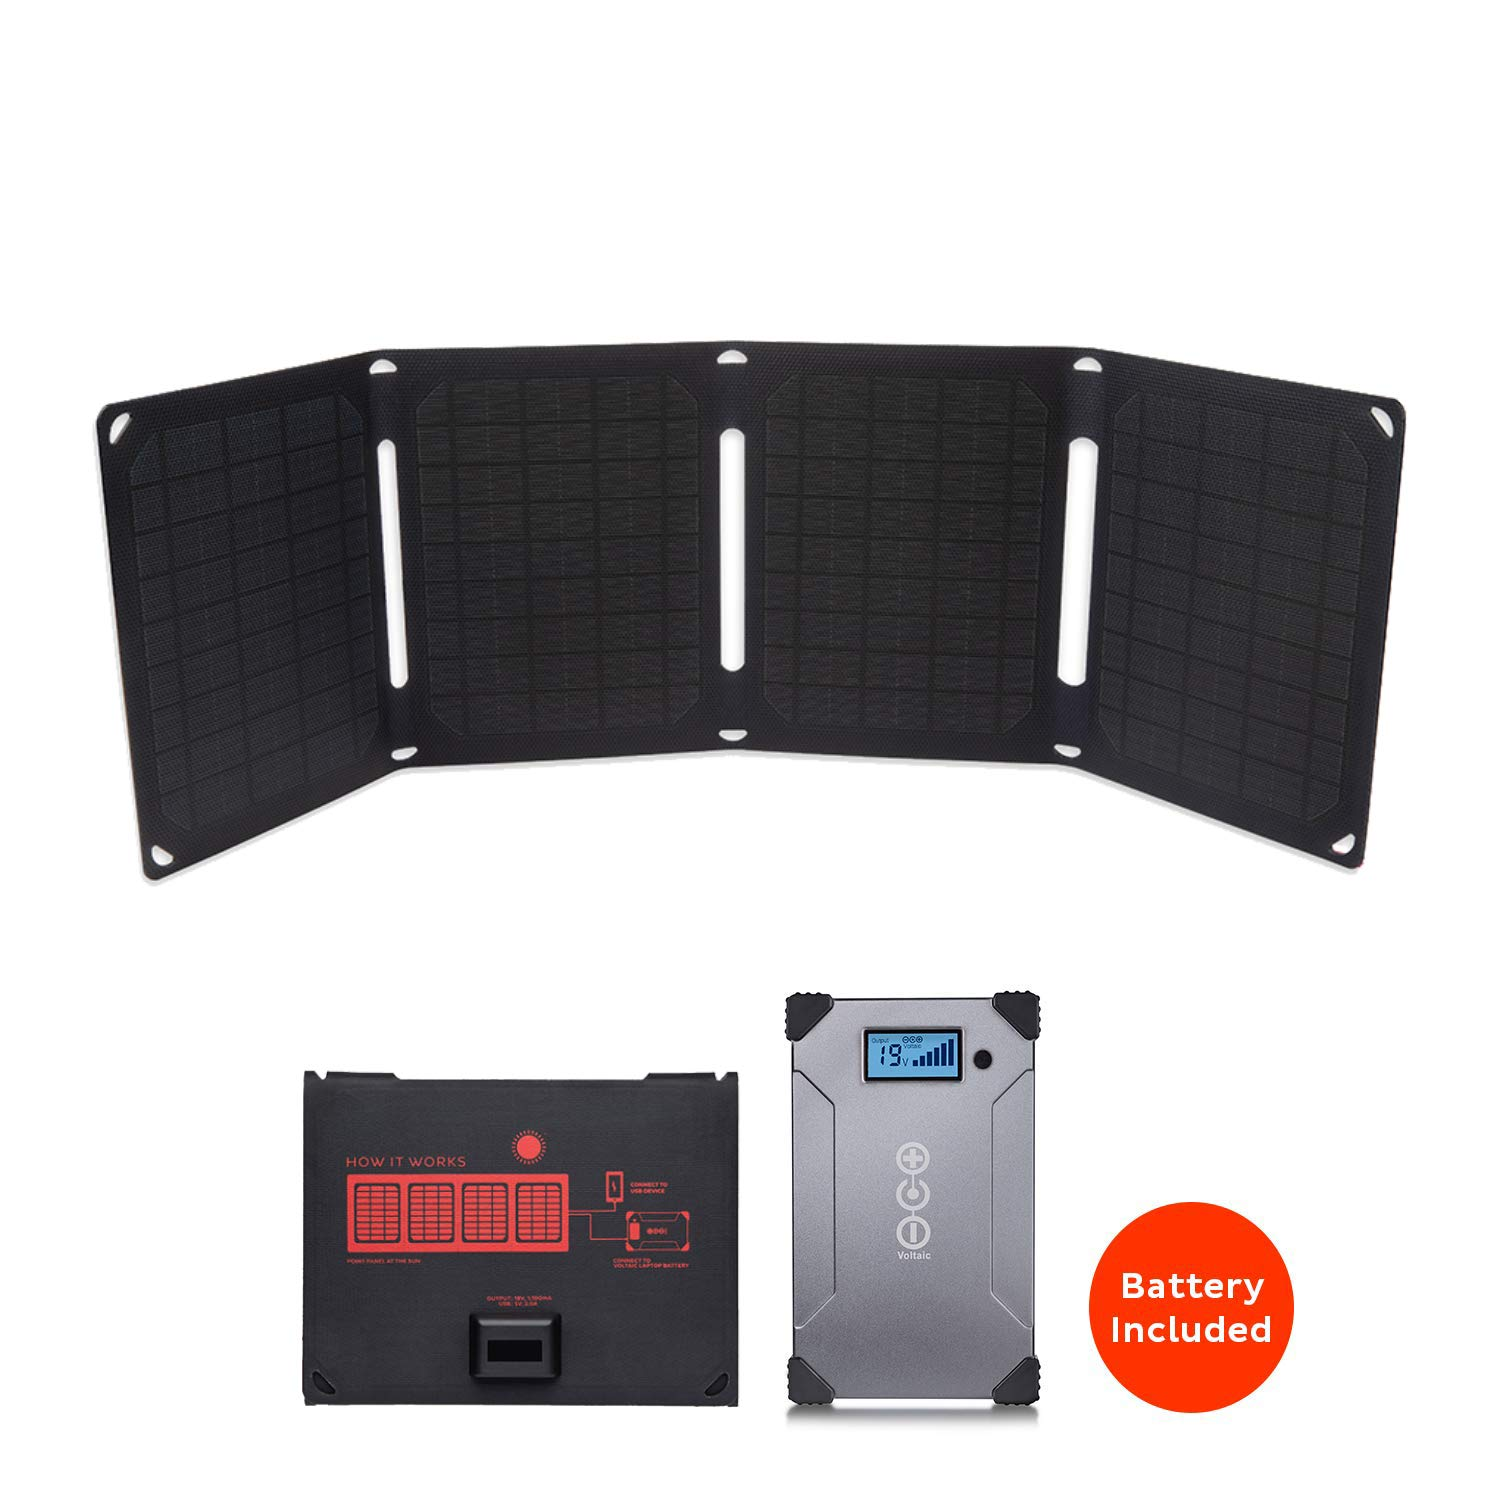 Voltaic Systems Arc 20 Watt Rapid Solar Laptop Charger, 24,000mAh   Includes a USB-C PD Battery Pack (Power Bank) and 2 Year Warranty   Powers Laptops Including MacBook